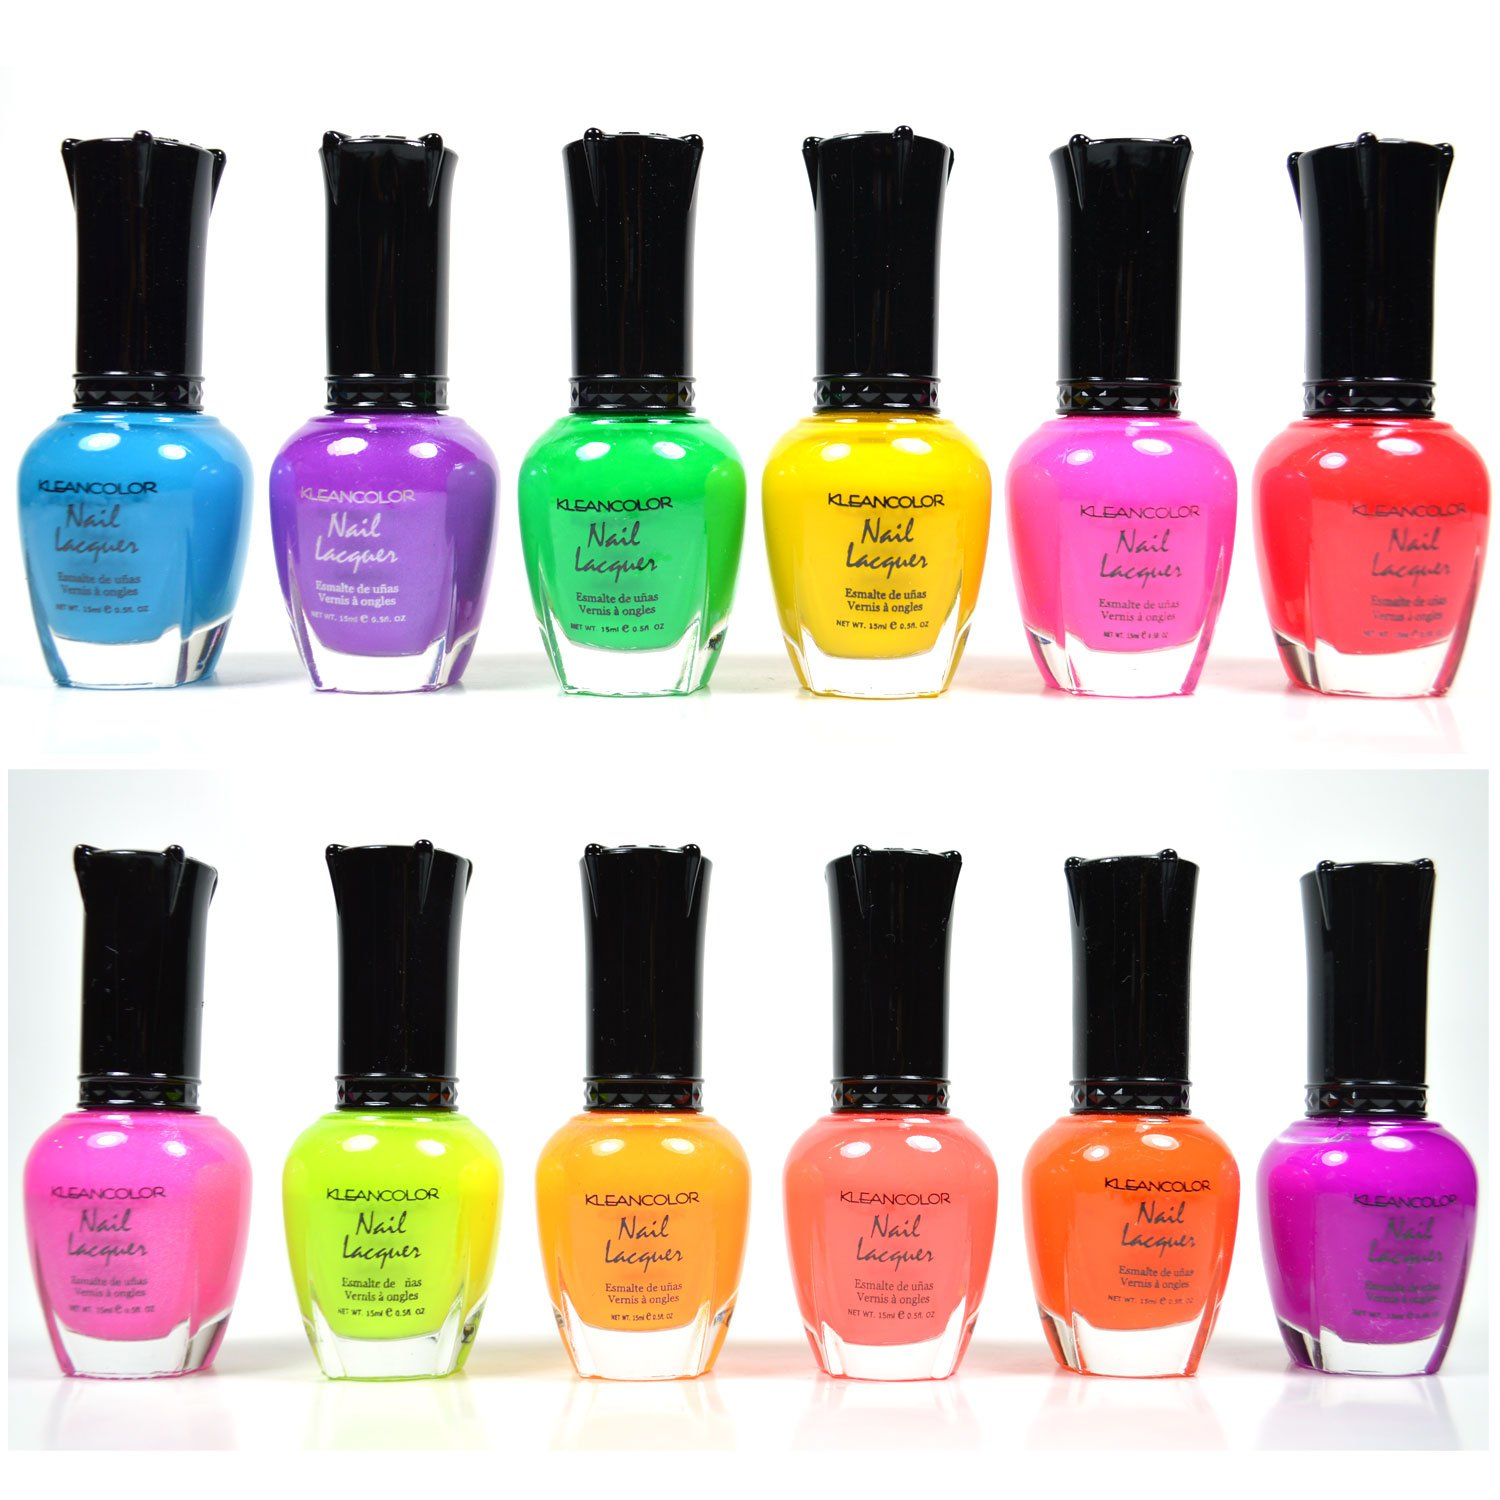 KLEANCOLOR NEON COLORS 12 FULL COLLETION SET NAIL POLISH